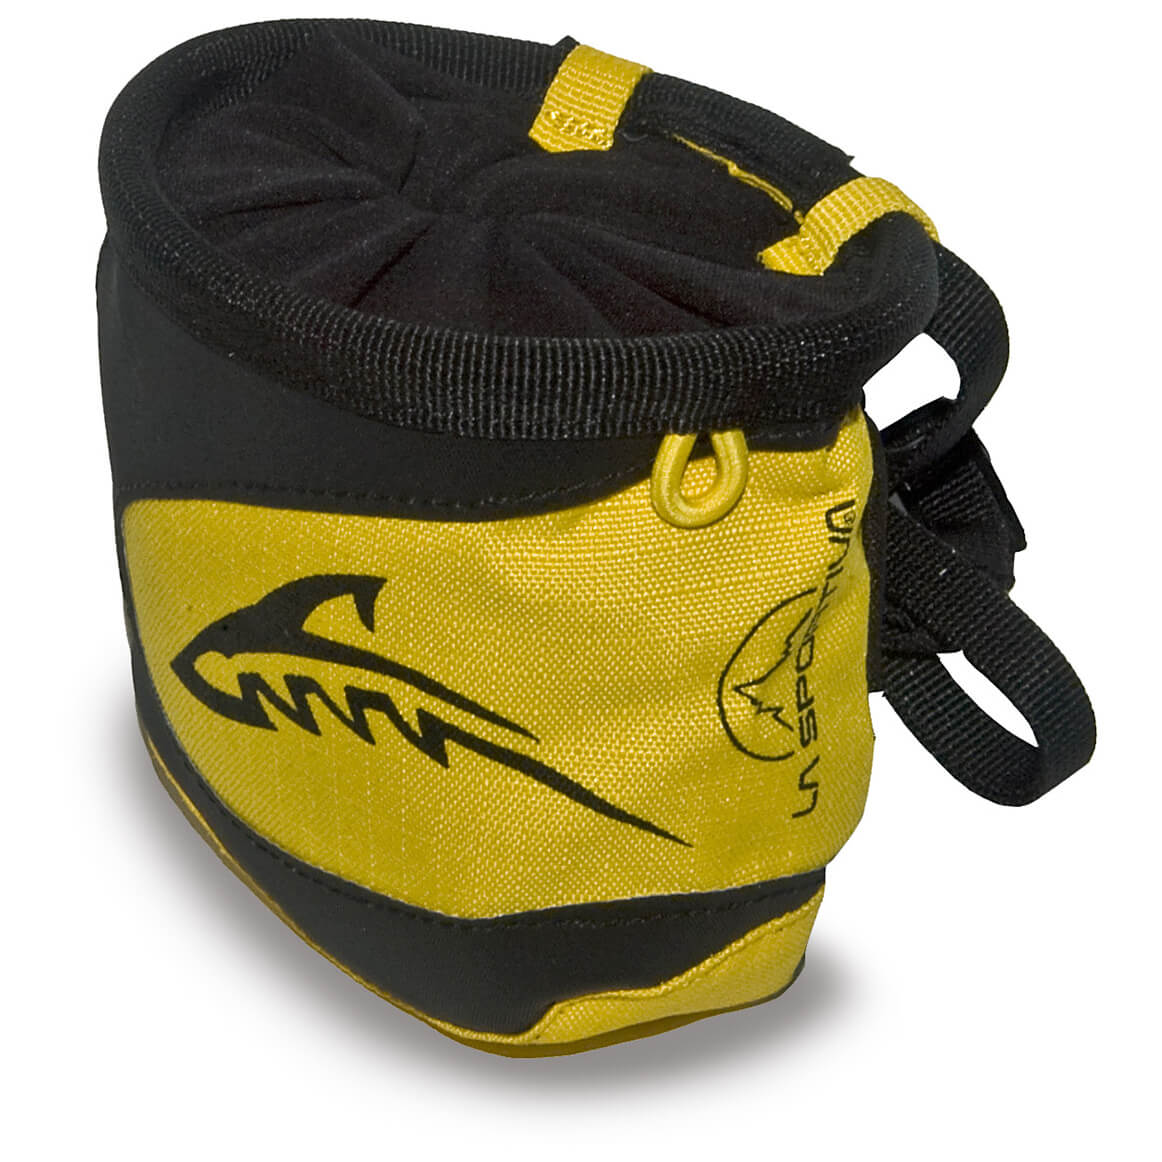 LA SPORTIVA Shark Chalk Bag